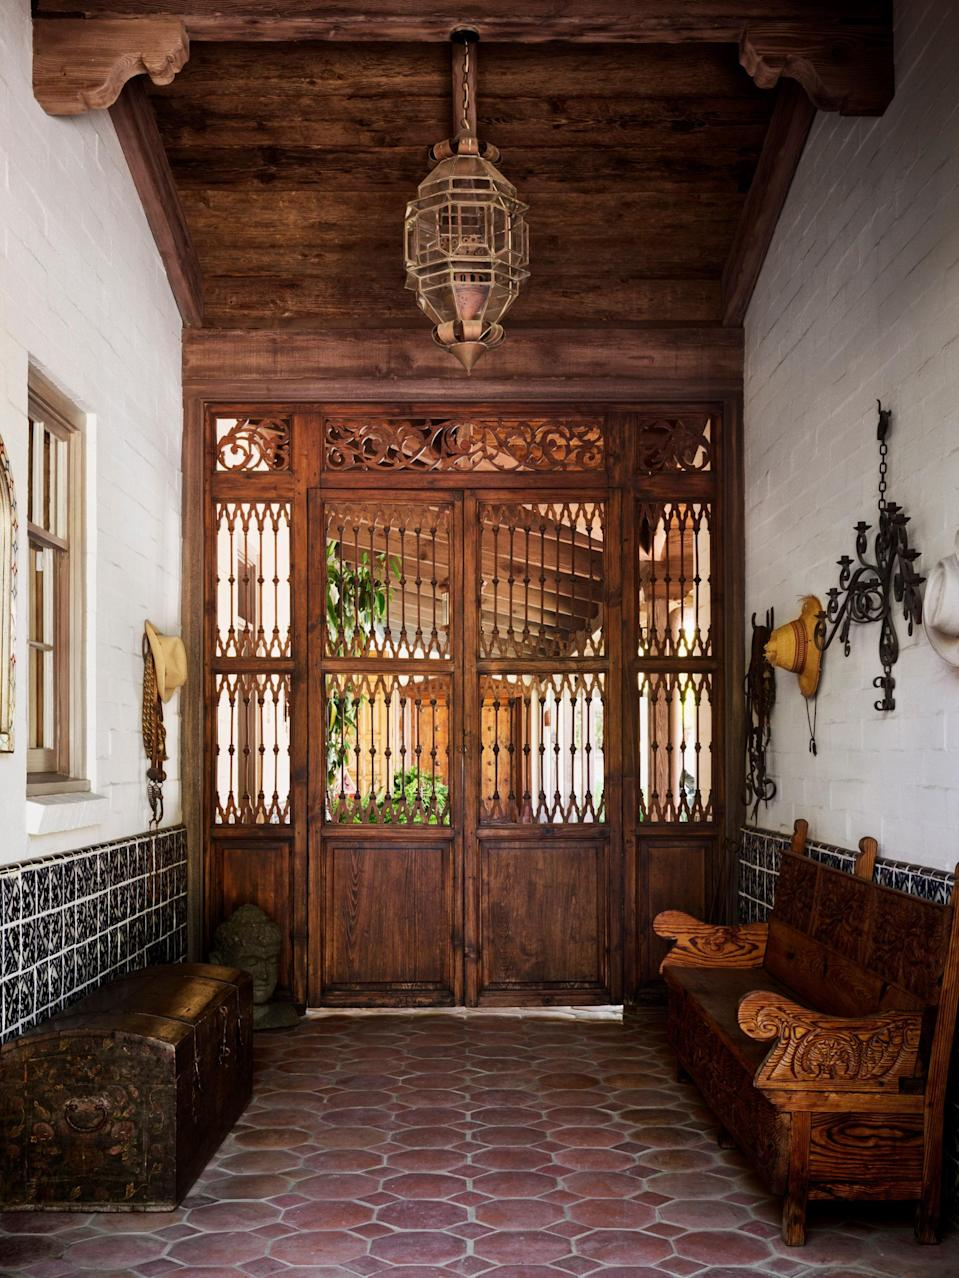 """Actor Rainn Wilson and his wife, writer Holiday Reinhorn, were immediately enchanted by this Alfred """"Hap"""" Gilman–designed Spanish-style hacienda with distant views of the Pacific Ocean. After buying the property, they turned to decorator Tammy Randall Wood to help them realize their vision. The house's entry arcade features antique wood gates and beams from Gaudalajara."""